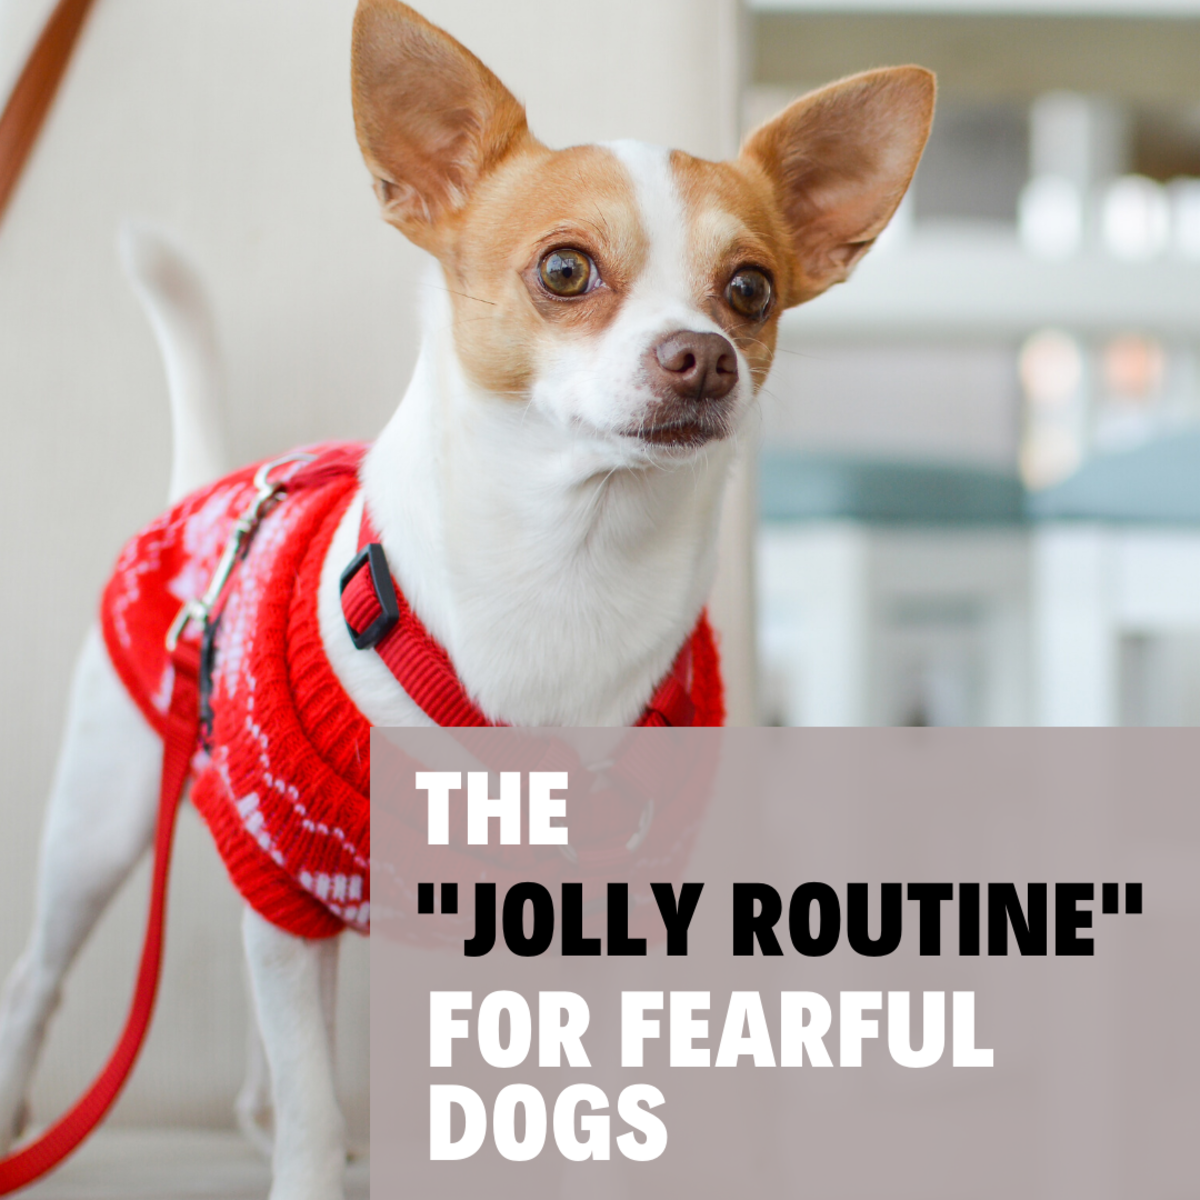 Help Your Fearful Dog With the